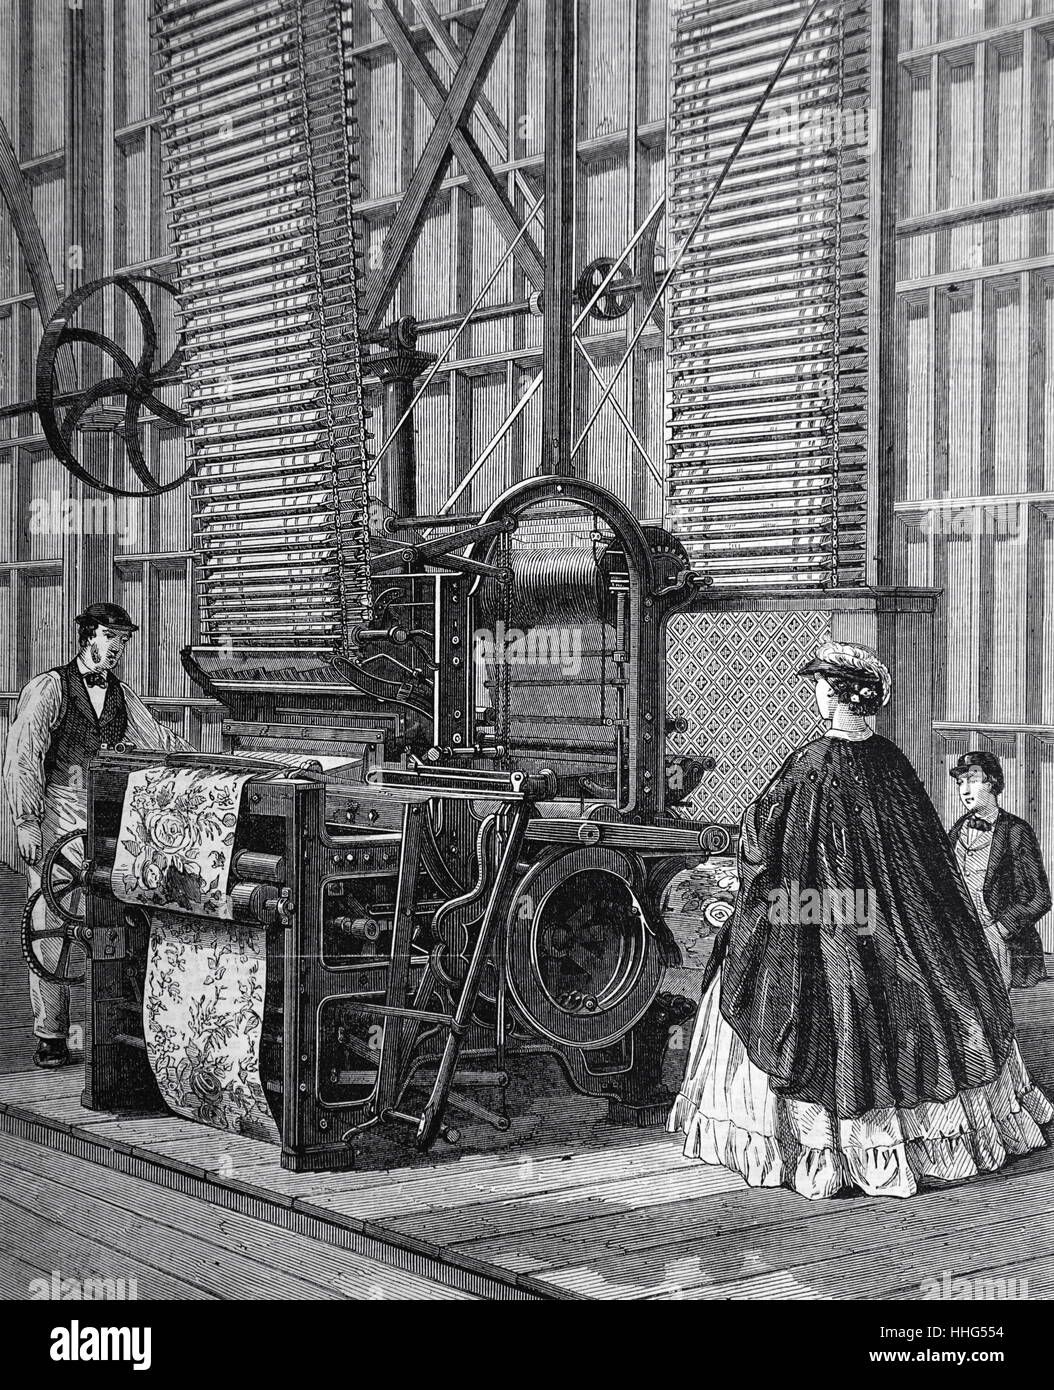 Smith's Powered loom in a factory, used for weaving tufted pile carpets. - Stock Image